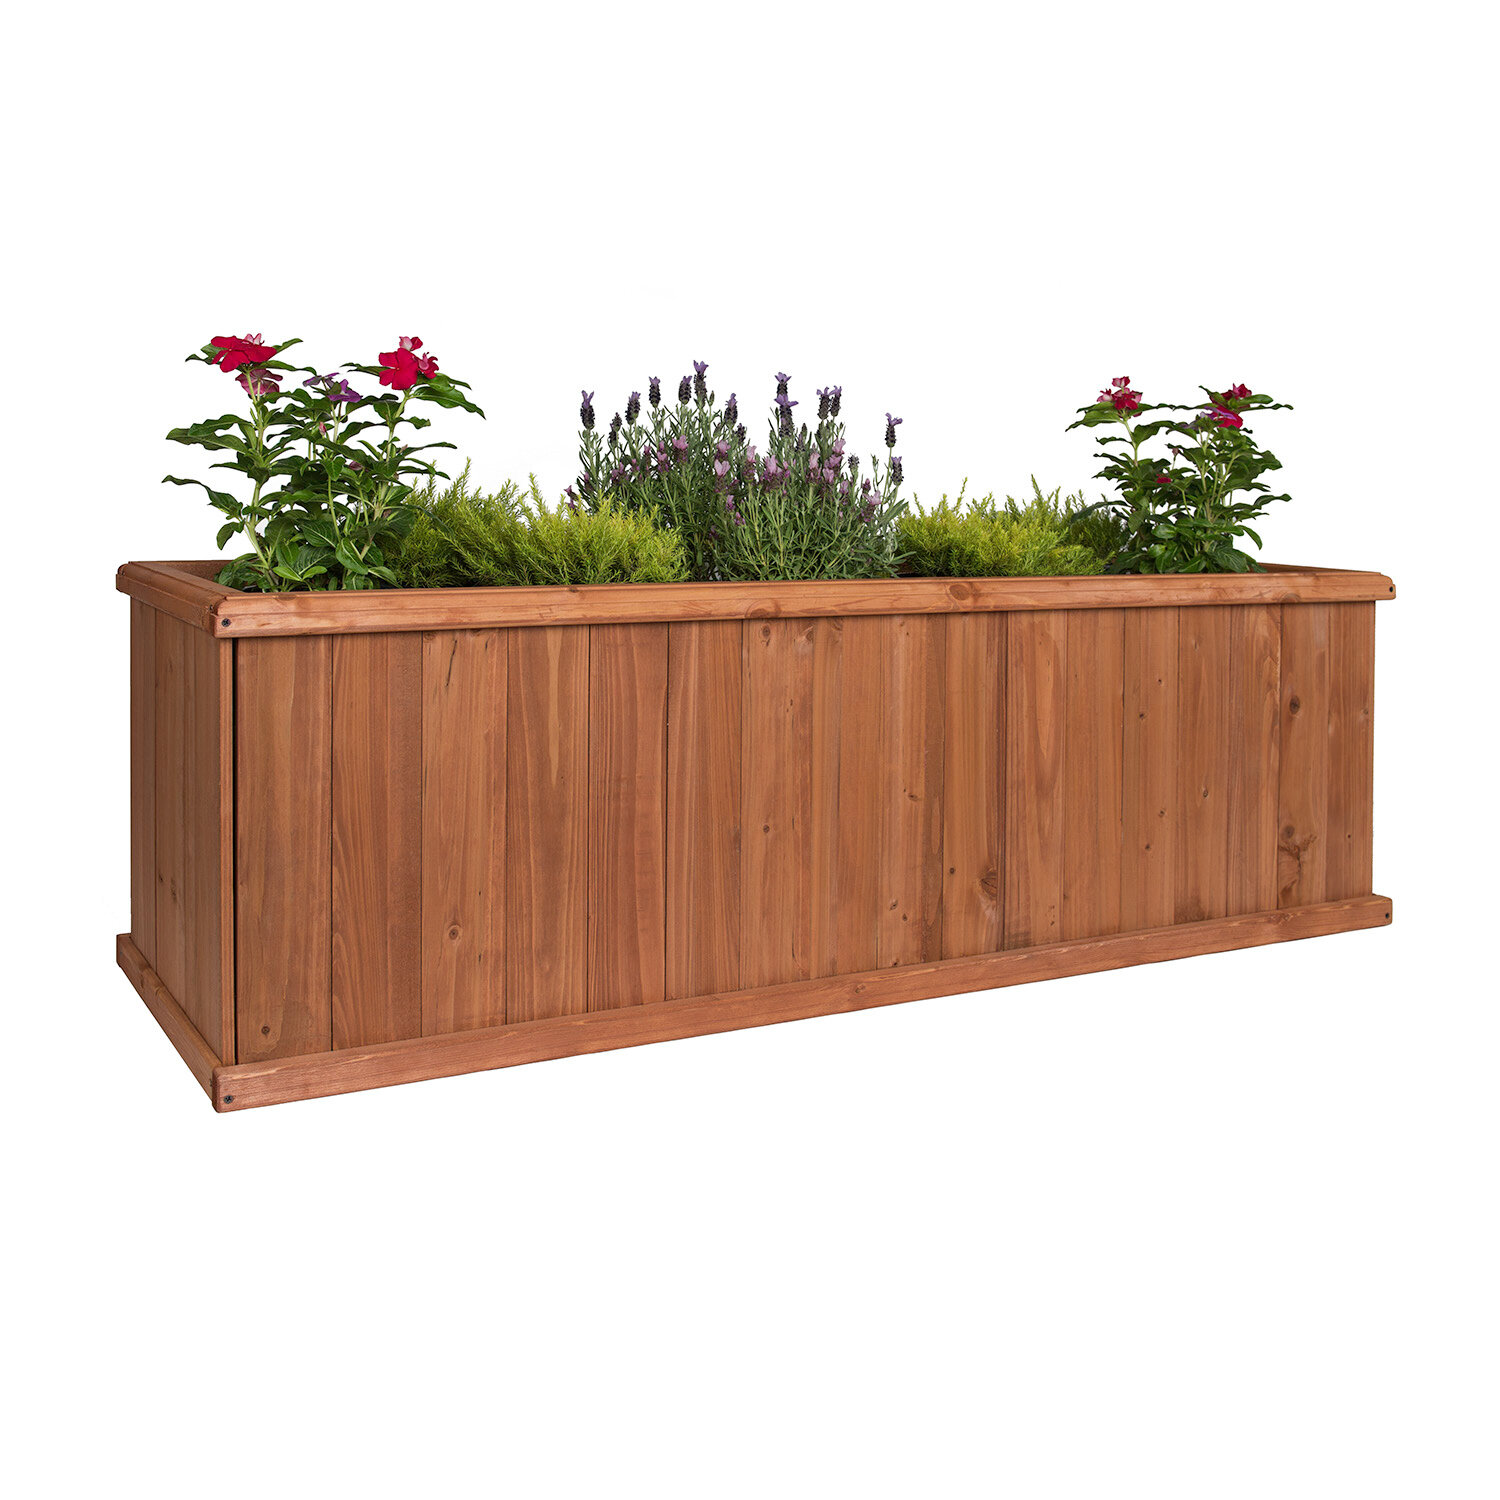 Picture of: Planter Boxes From 19 99 Through 12 04 Wayfair